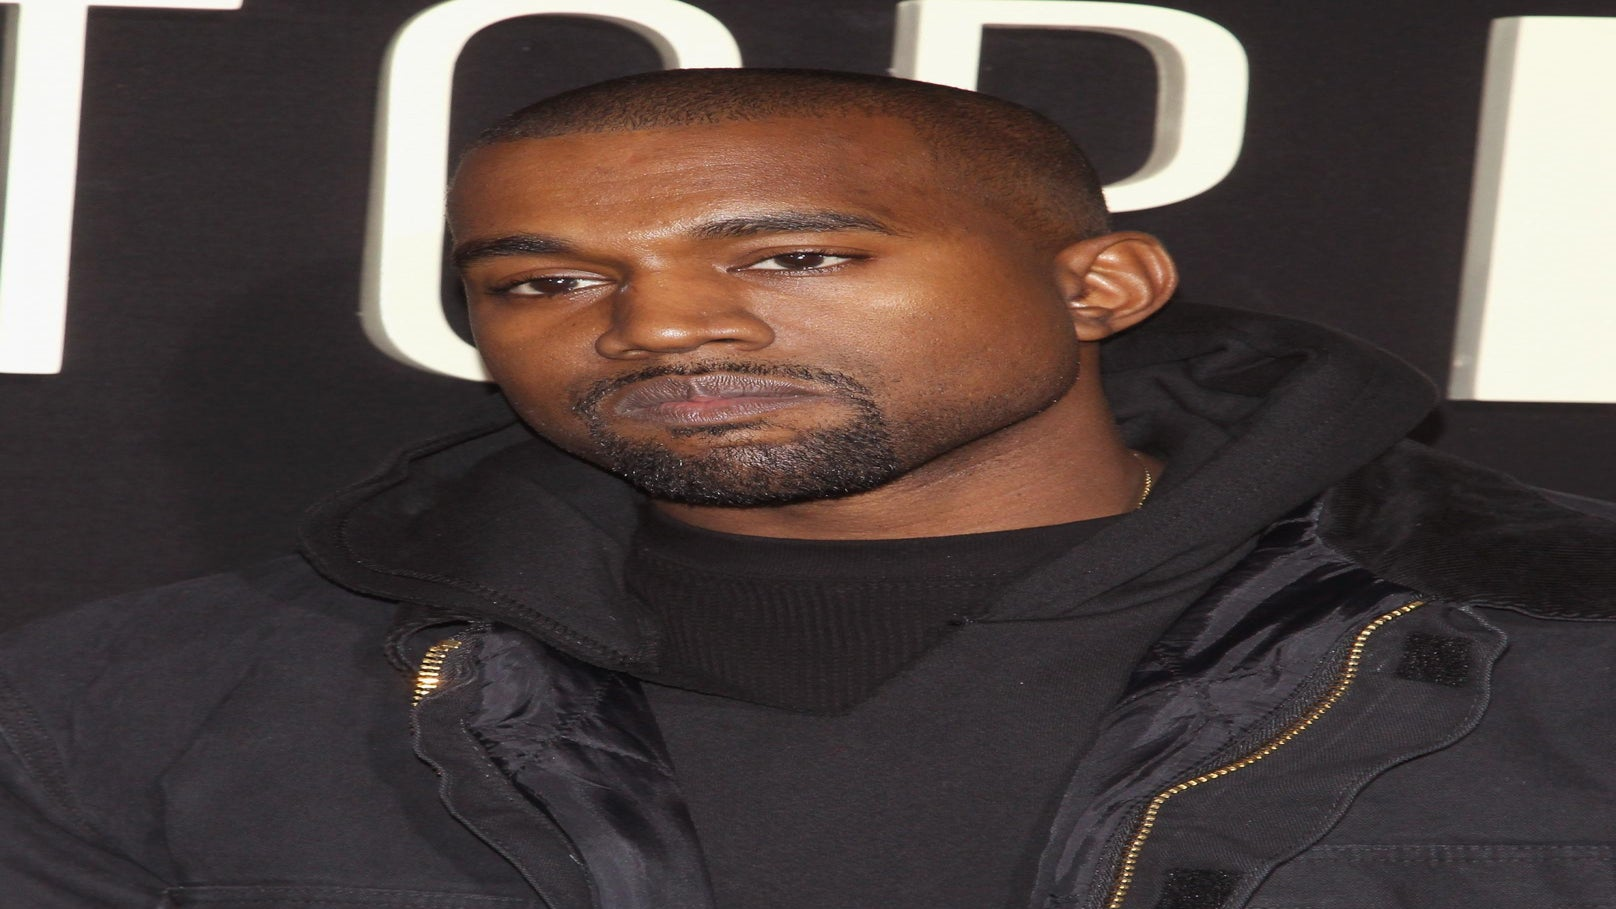 ESSENCE Poll: What's Your Favorite Kanye West Song?